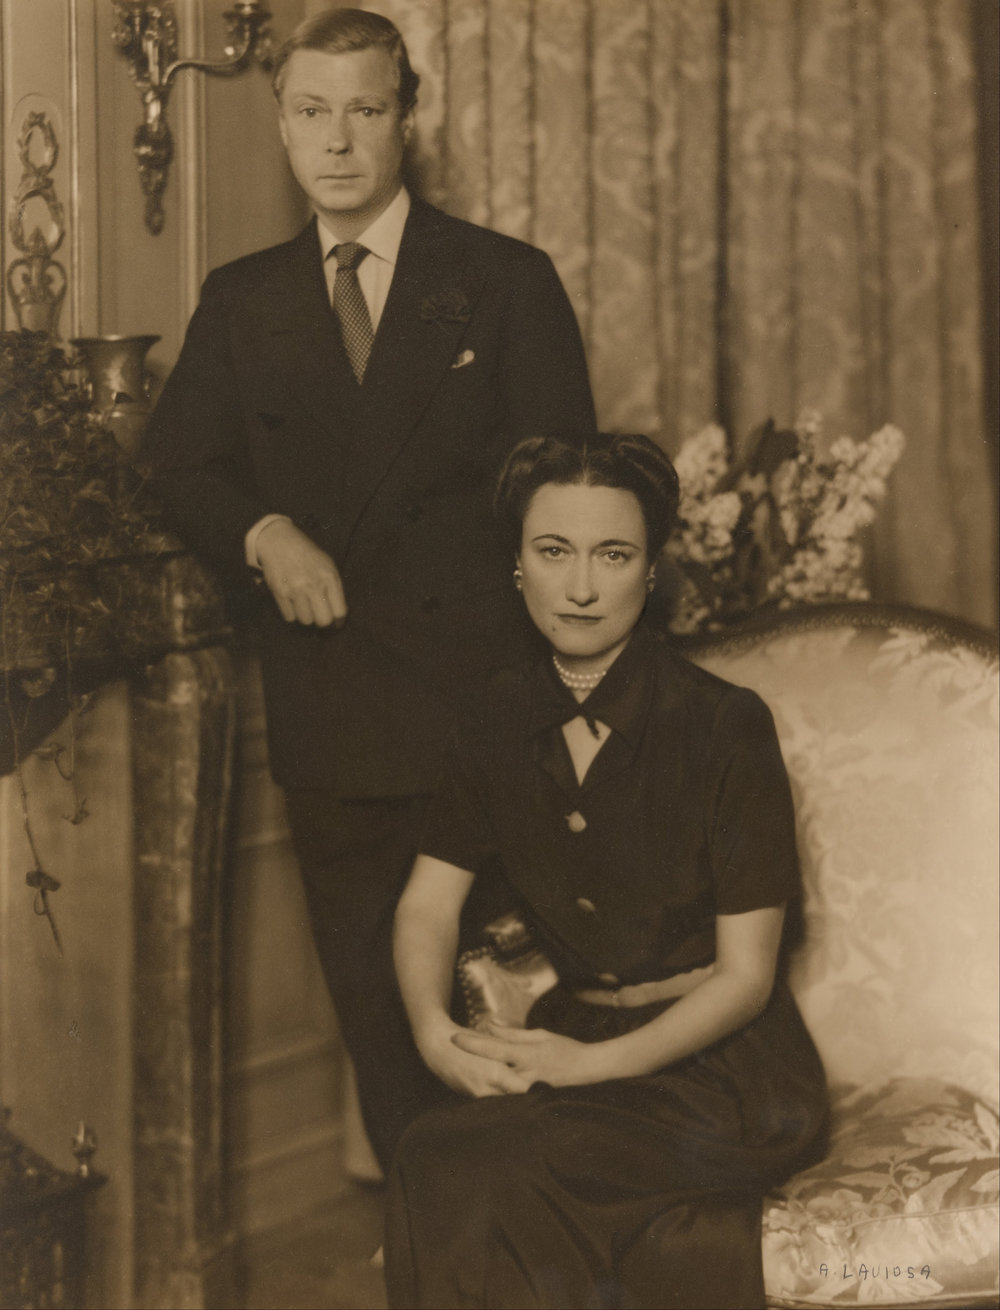 The future Edward VIII as Prince of Wales with Wallis Simpson, taken by Vincenzo Laviosa, ca. 1934.